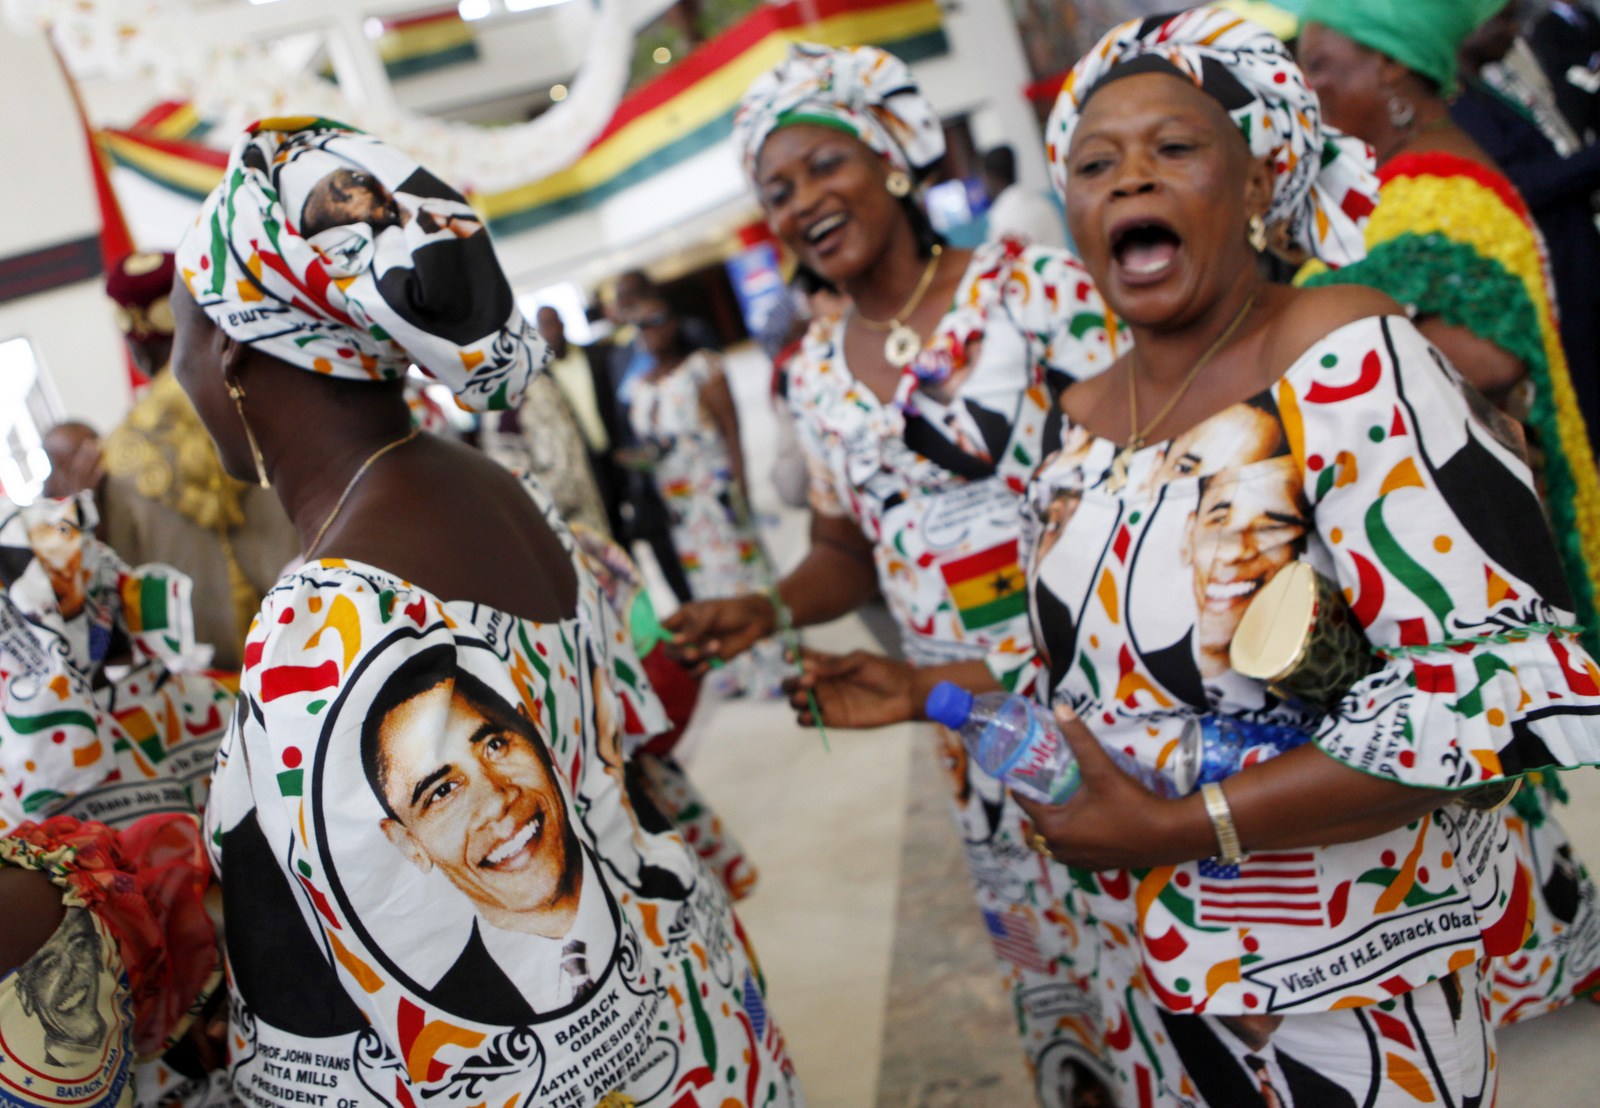 Women wearing traditional dresses bearing the image of President Barack Obama chant his name after he addressed the Ghanaian Parliament in Accra, Ghana,, July 11, 2009. (AP/Charles Dharapak)